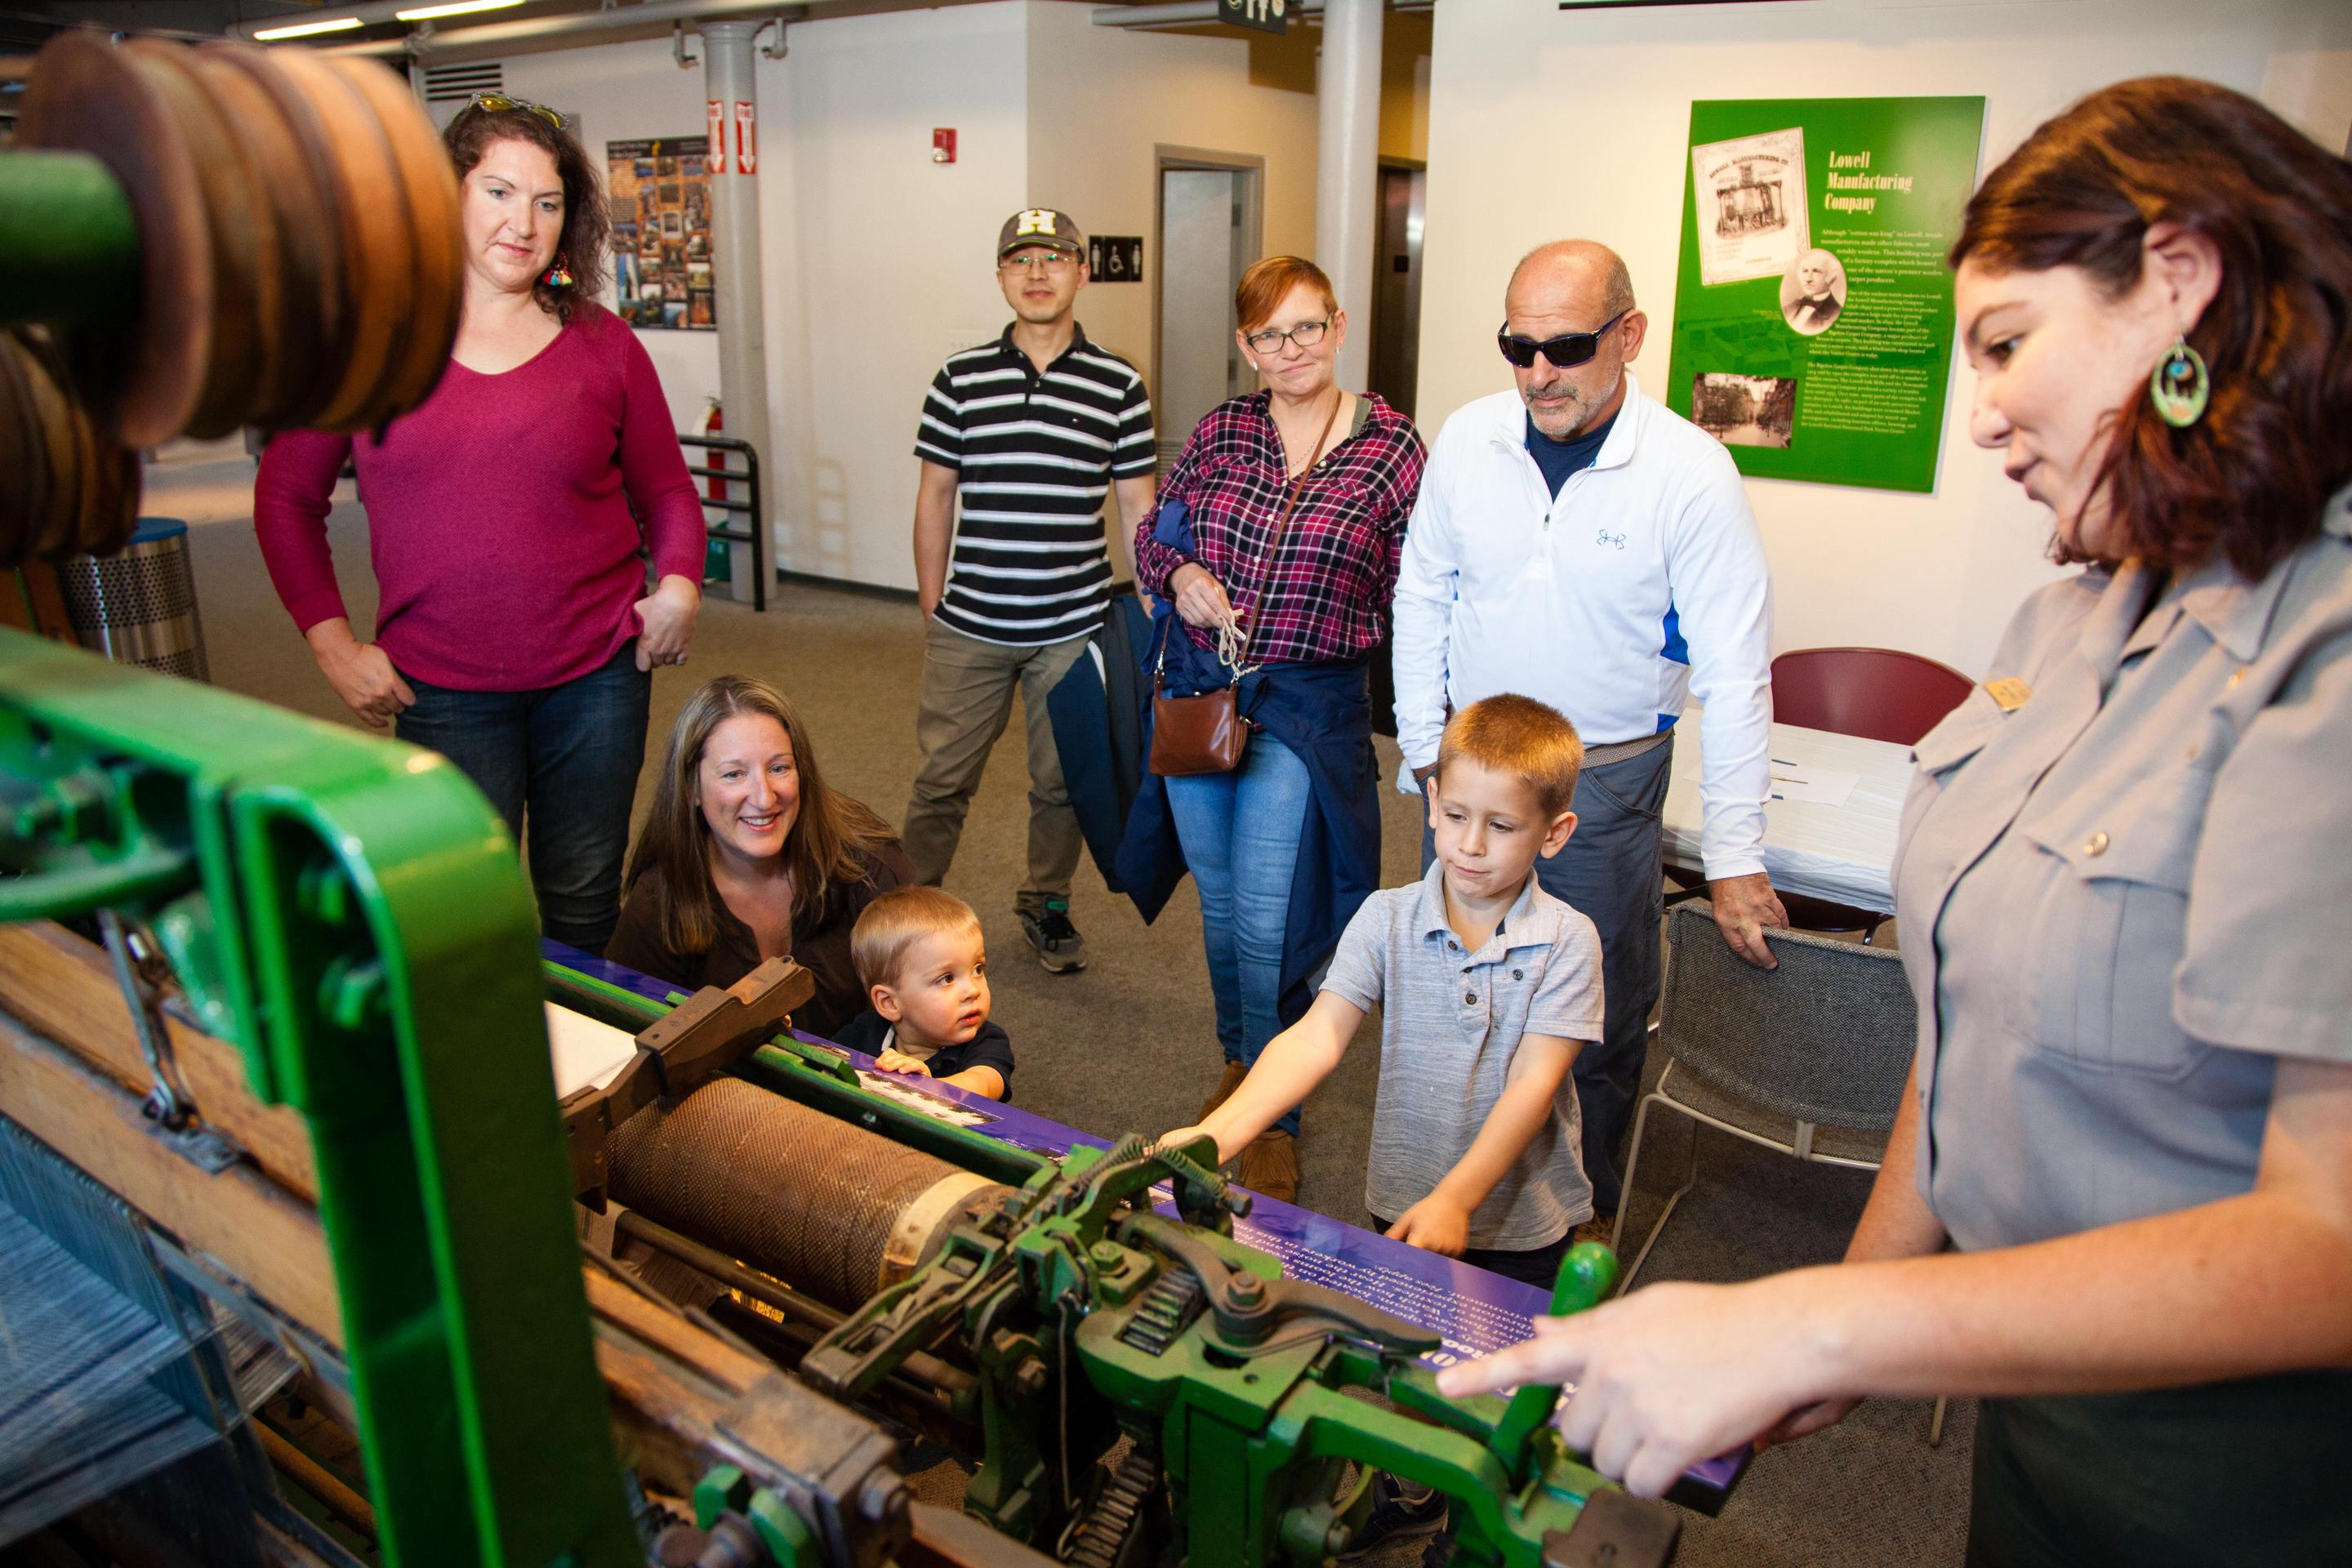 A ranger teaches visitors about a loom at the Visitor Center